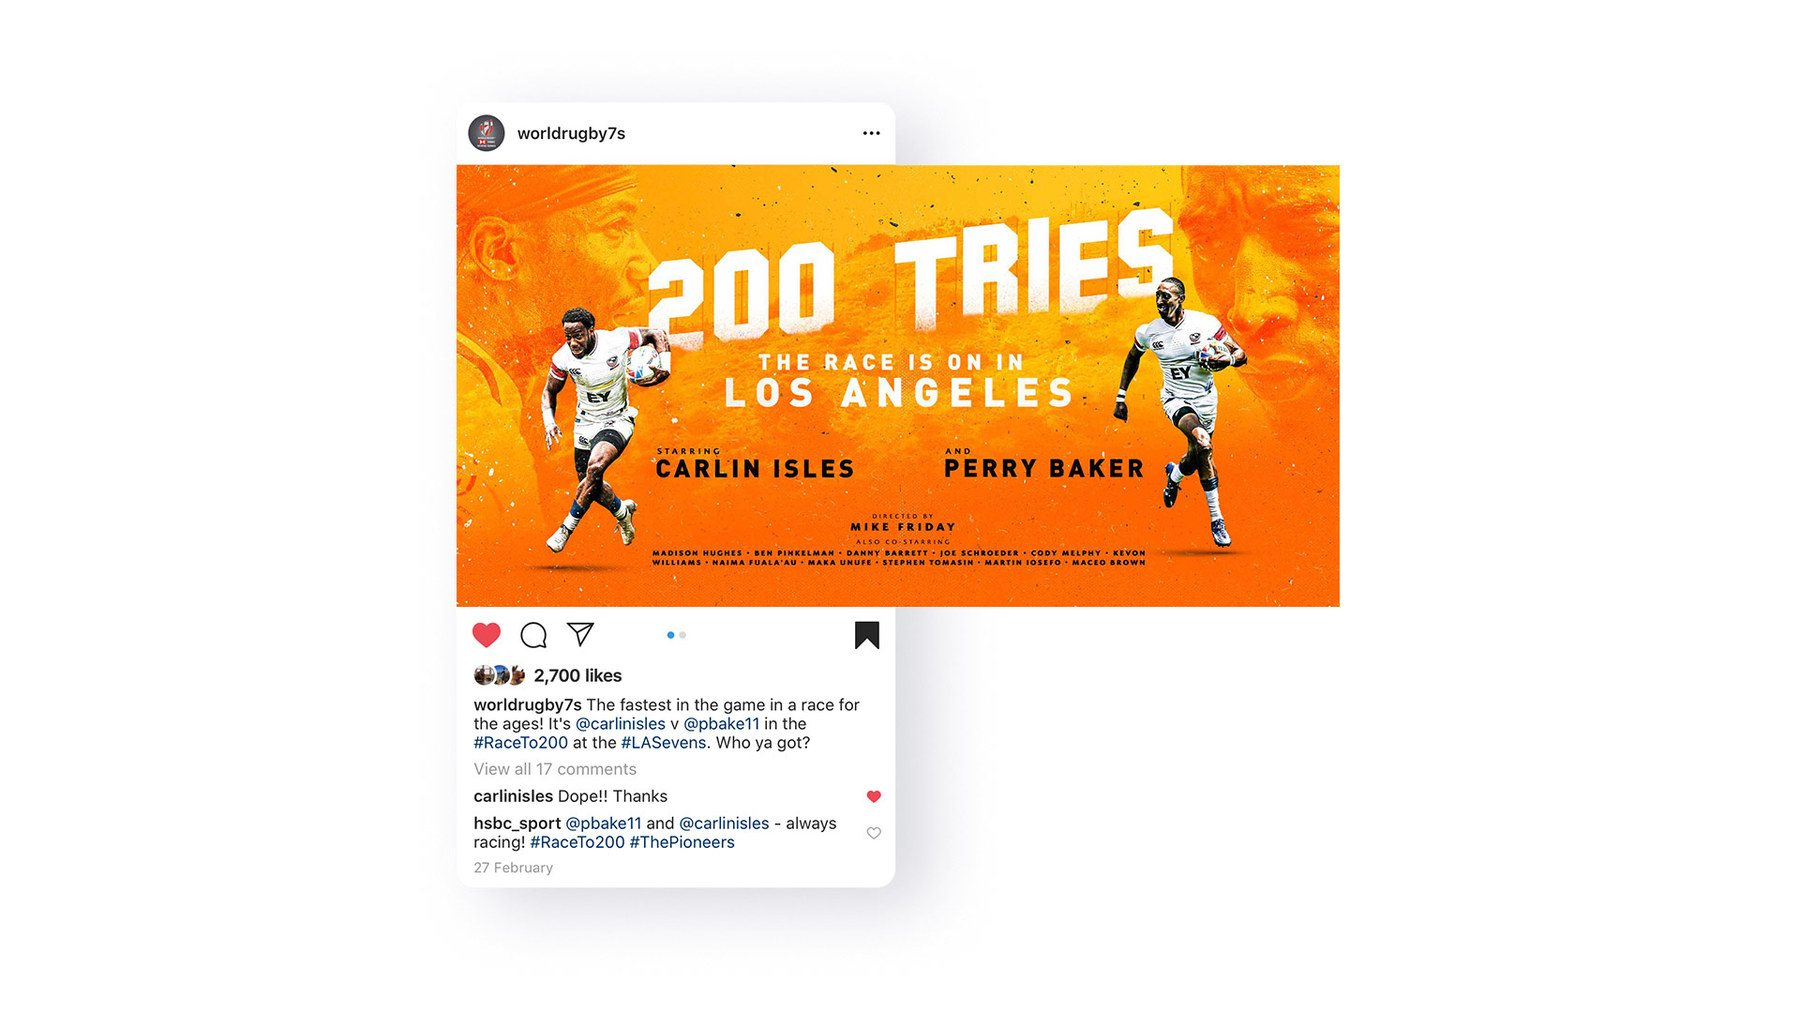 HSBC Sevens Series creative for American players racing to get 200 Tries in Los Angeles